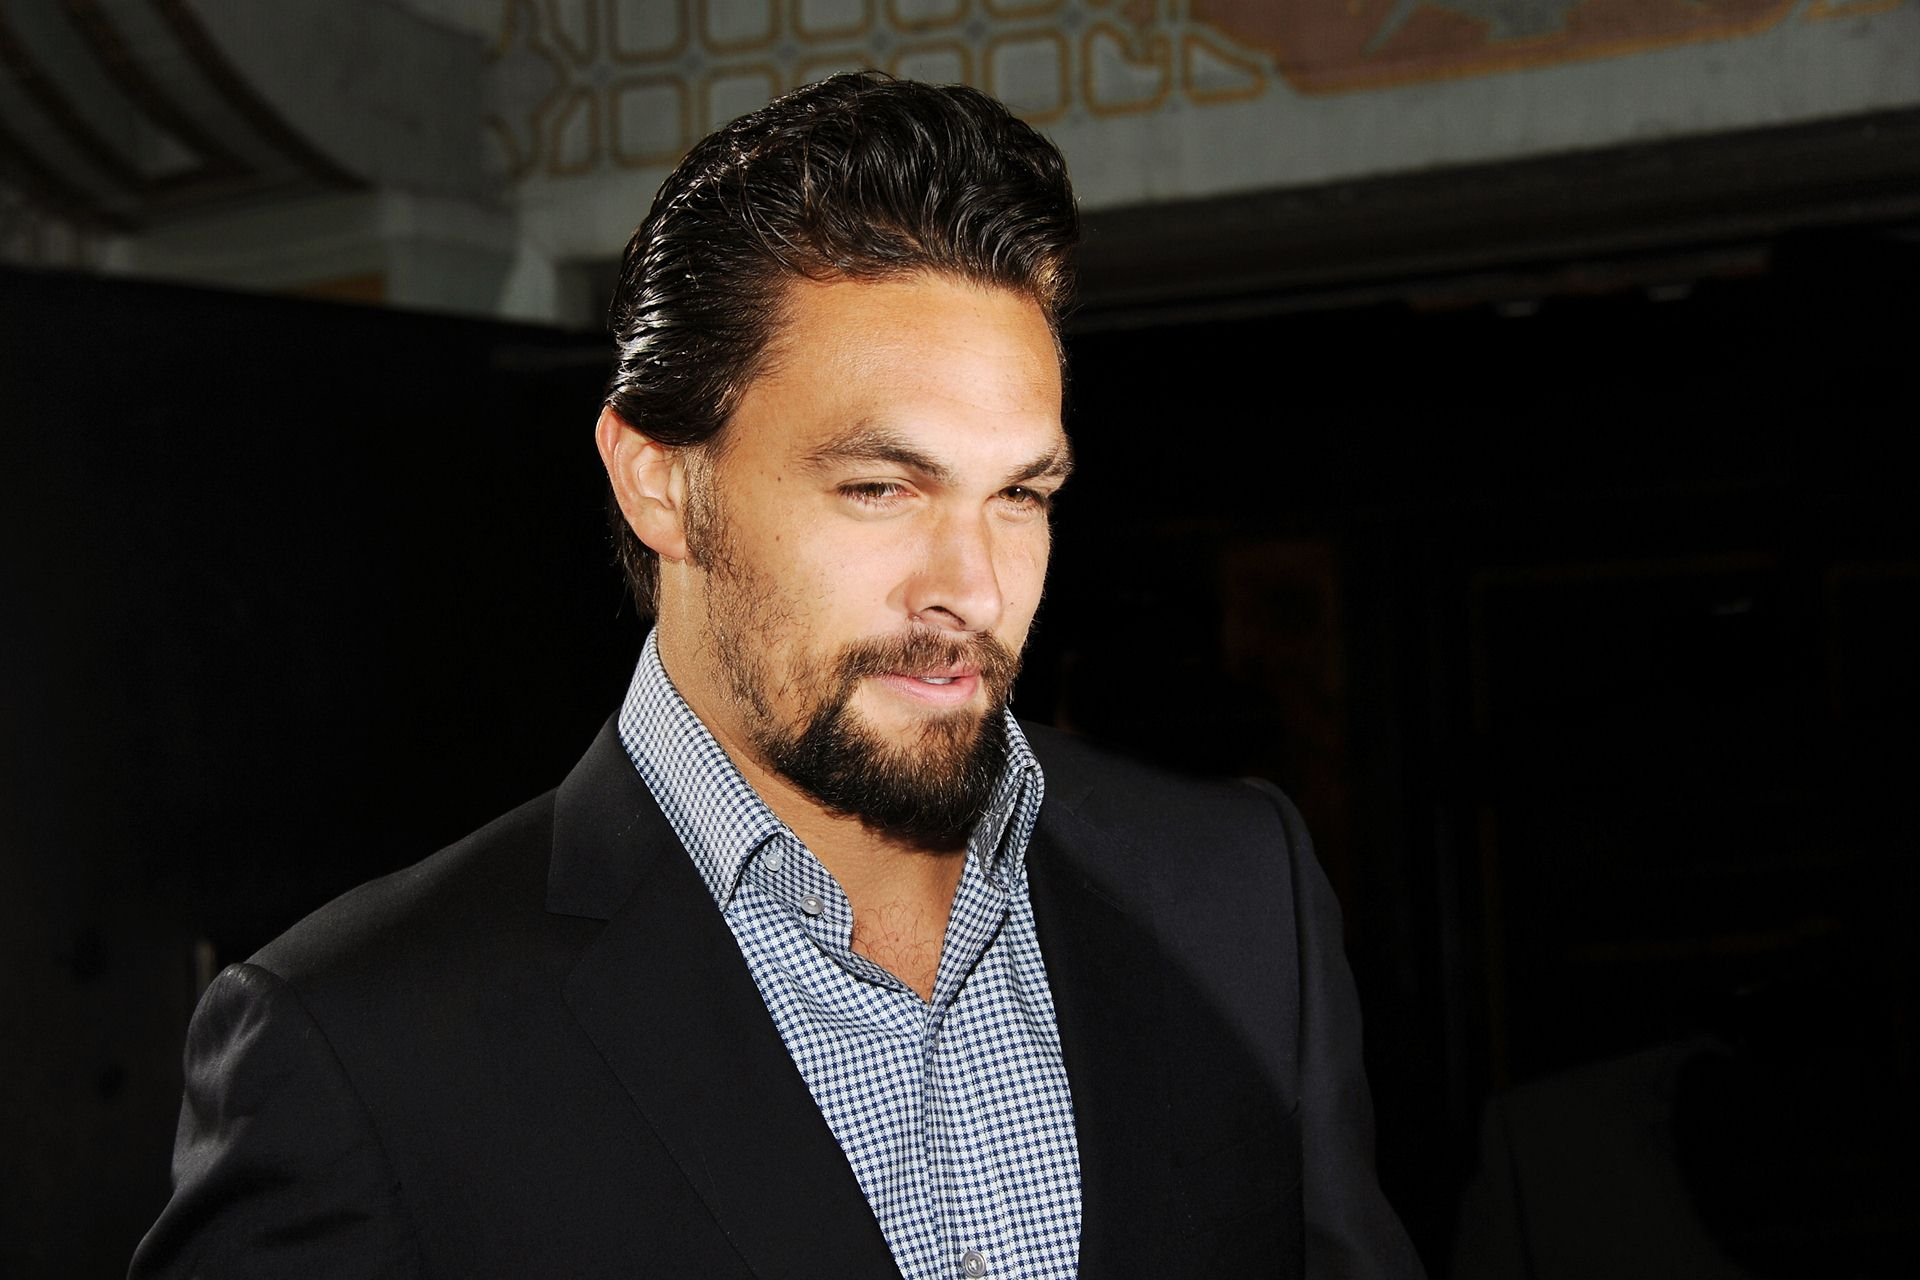 Jason Momoa Wallpapers High Resolution and Quality Download 1920x1280